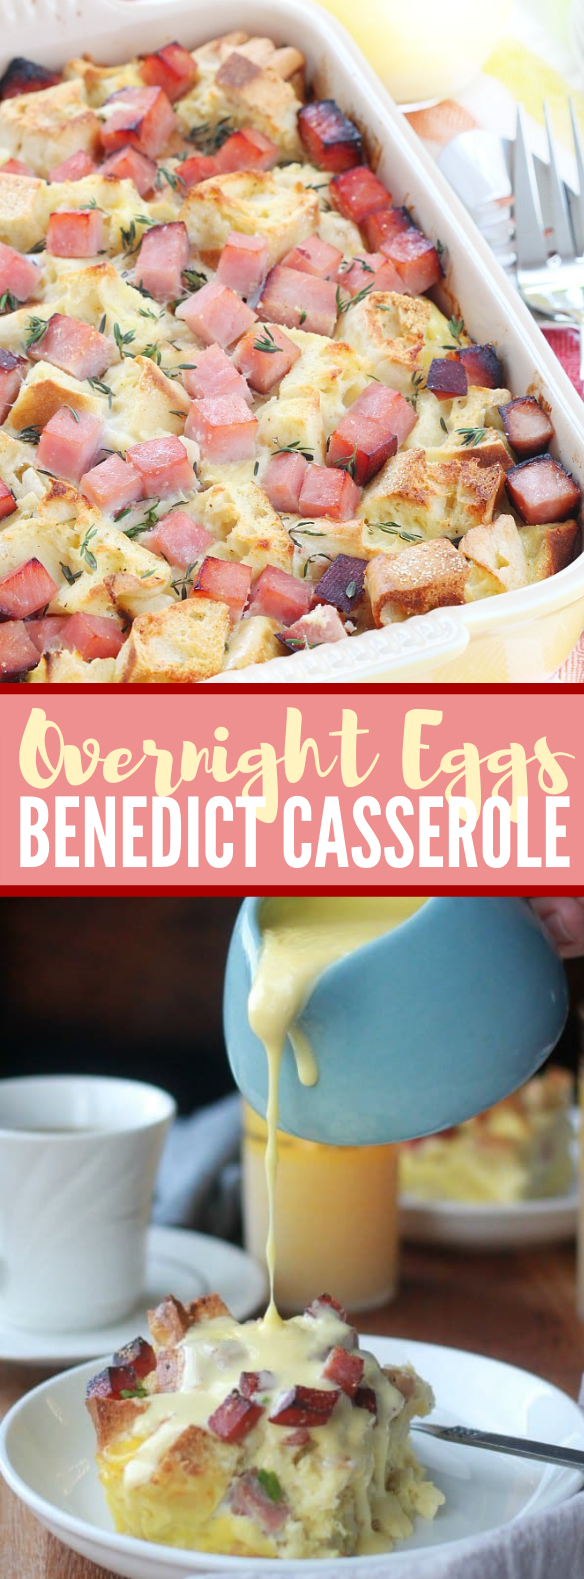 OVERNIGHT EGGS BENEDICT CASSEROLE #dinner #breakfast